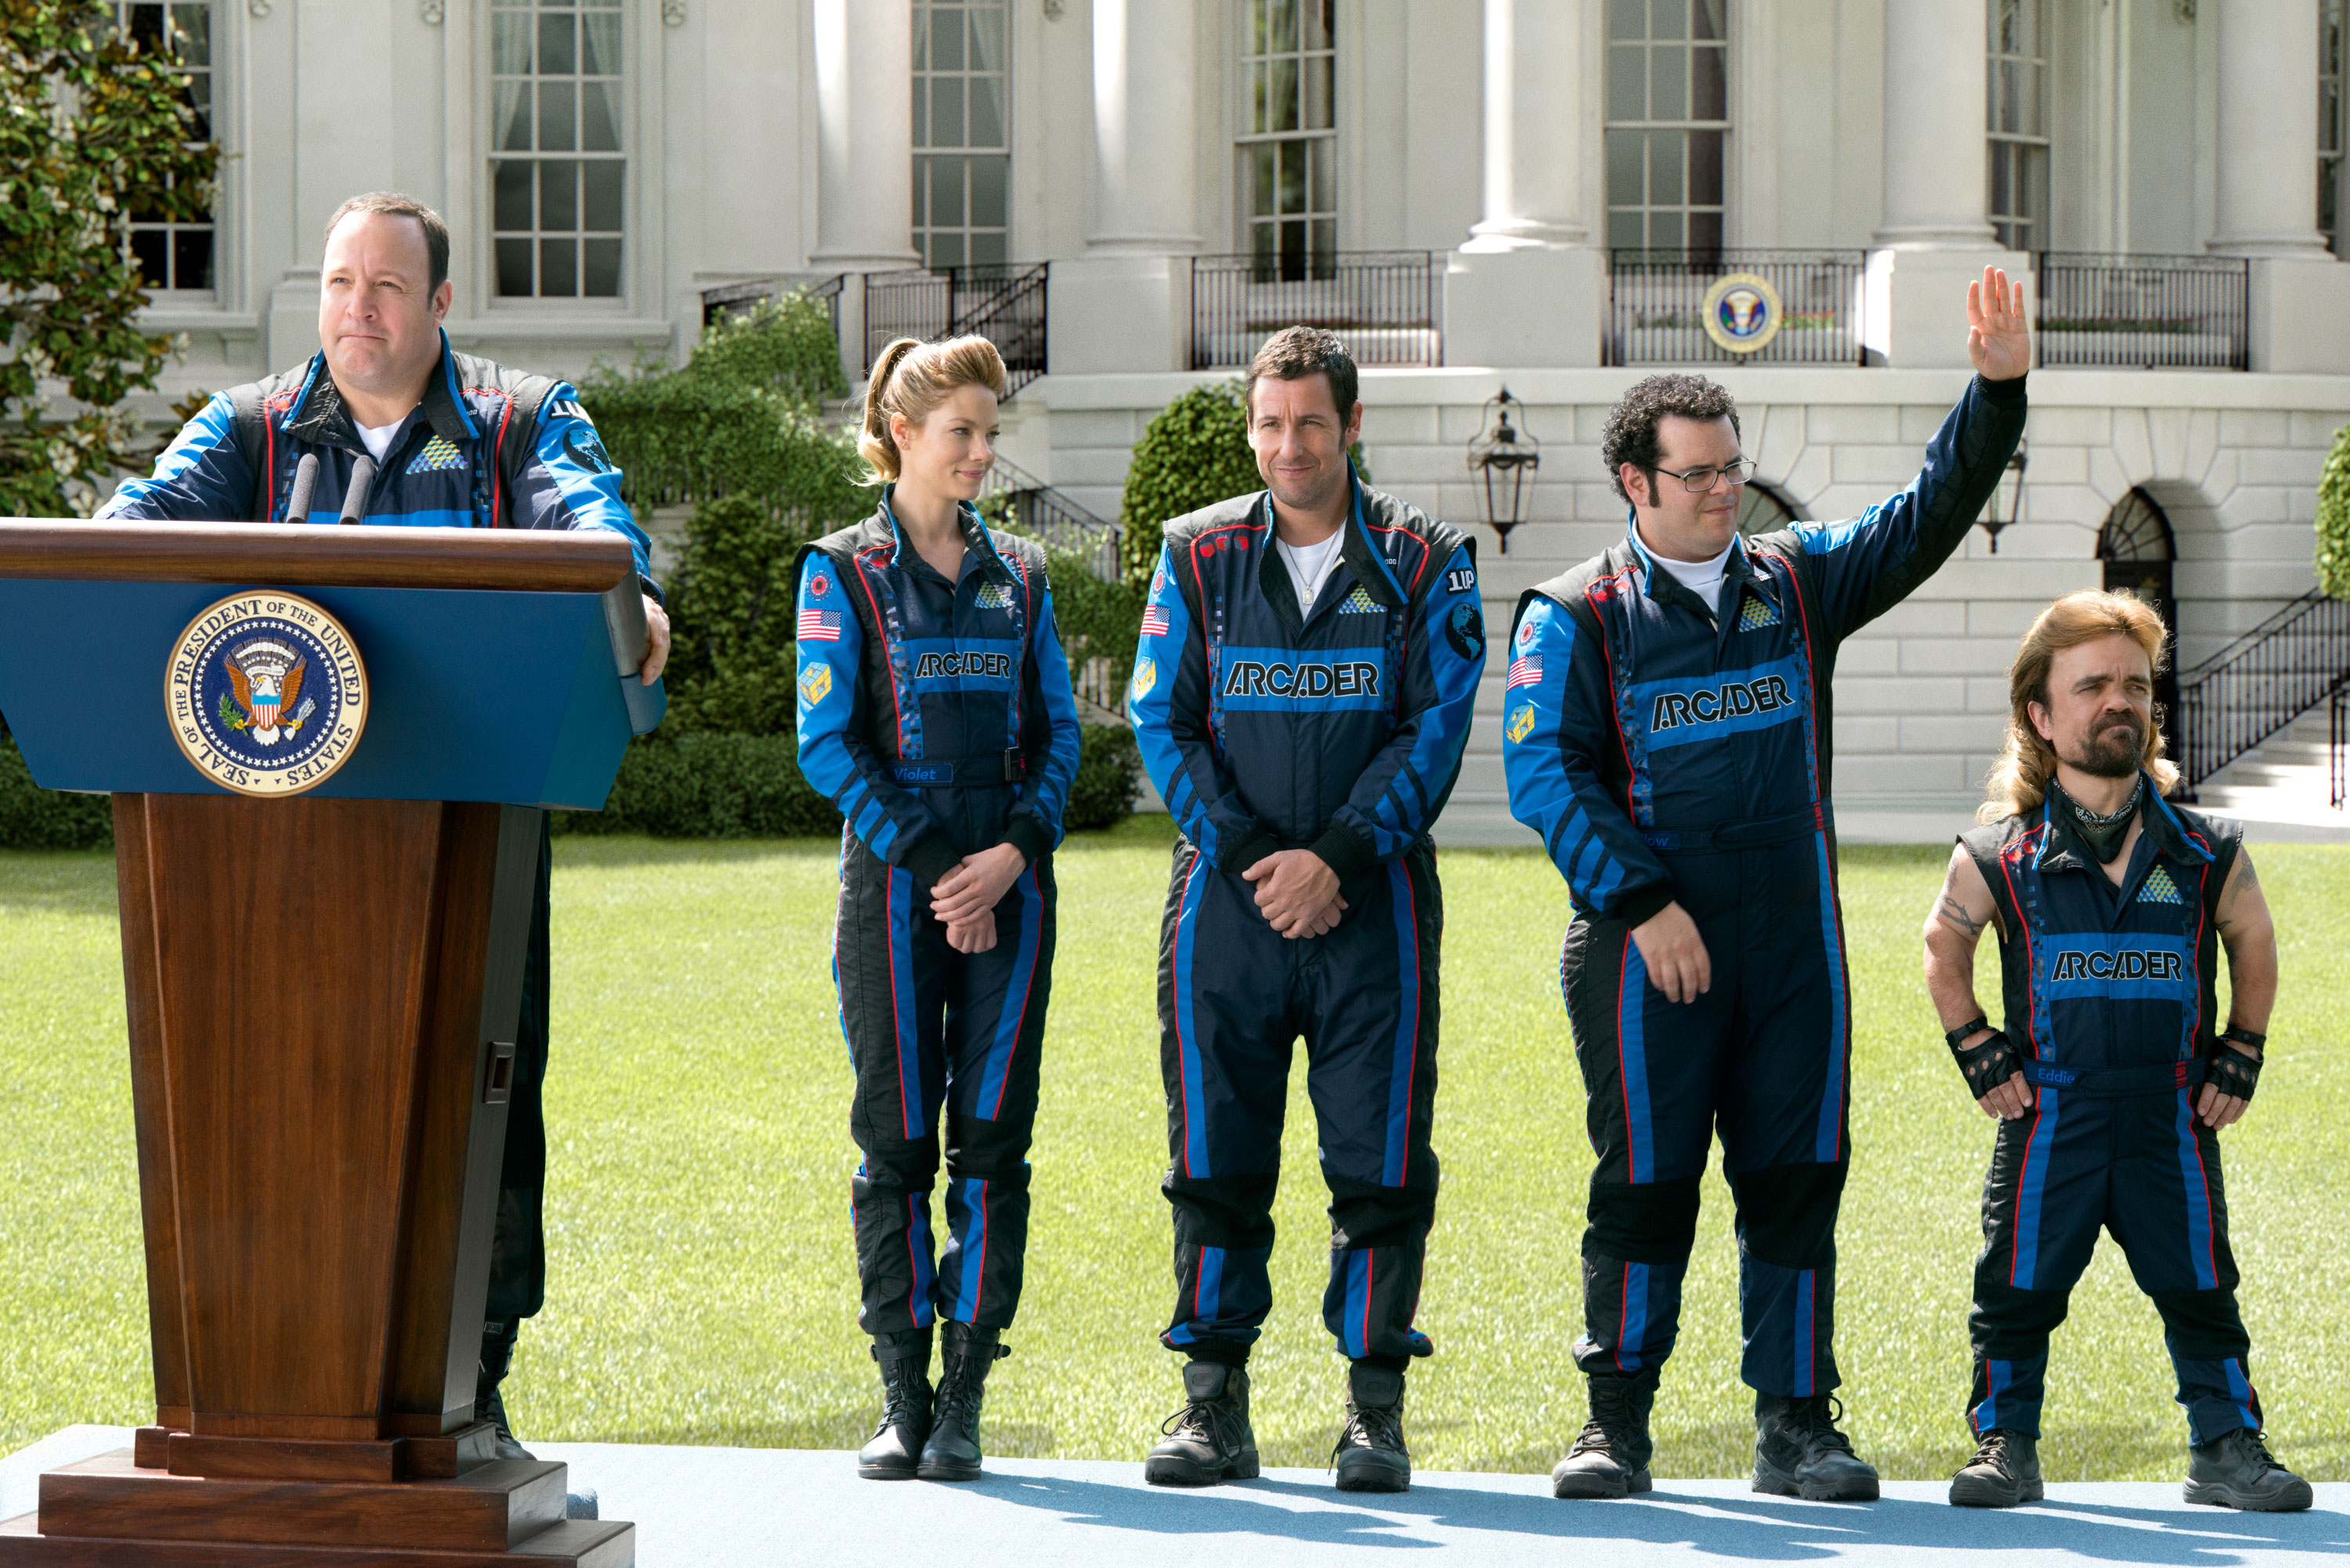 President Cooper (Kevin James) addresses the press on the White House lawn as Violet (Michelle Monaghan), Brenner (Adam Sandler), Ludlow (Josh Gad) and Eddie (Peter Dinklage) look on